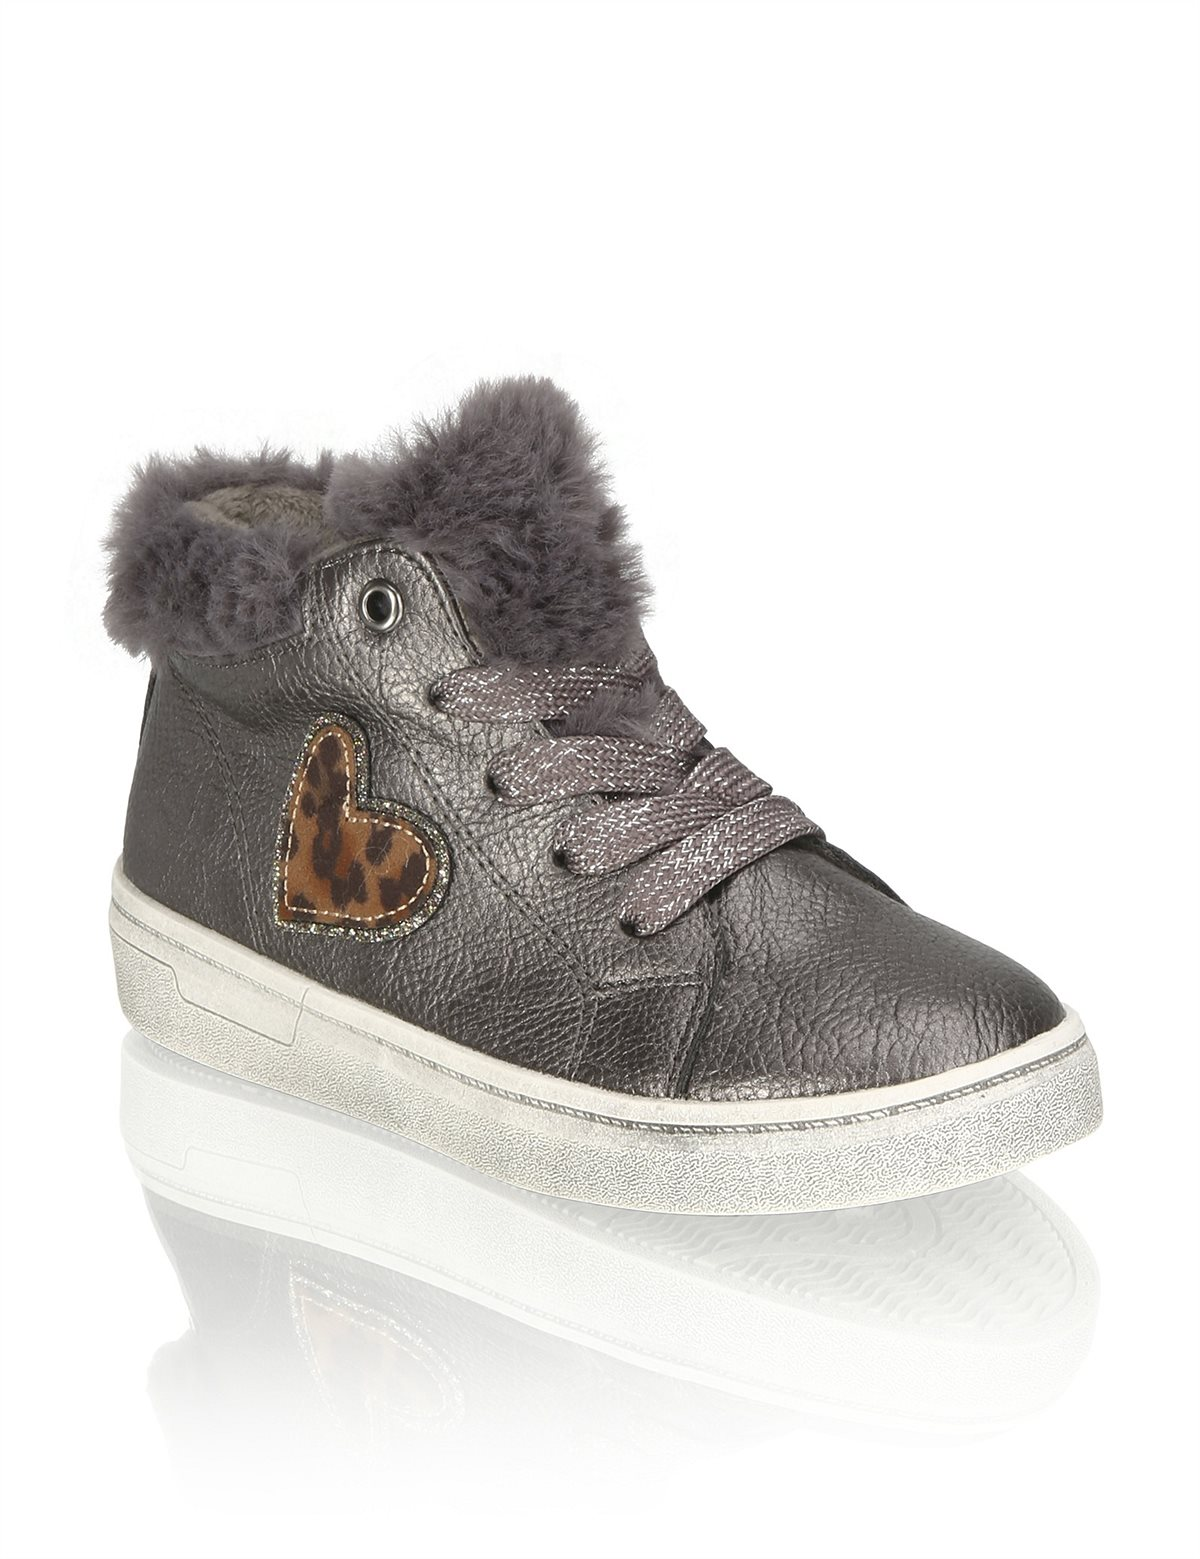 HUMANIC 15 Kids Funky Girls Boot ab EUR 34,95 ab Ende August 3623504714